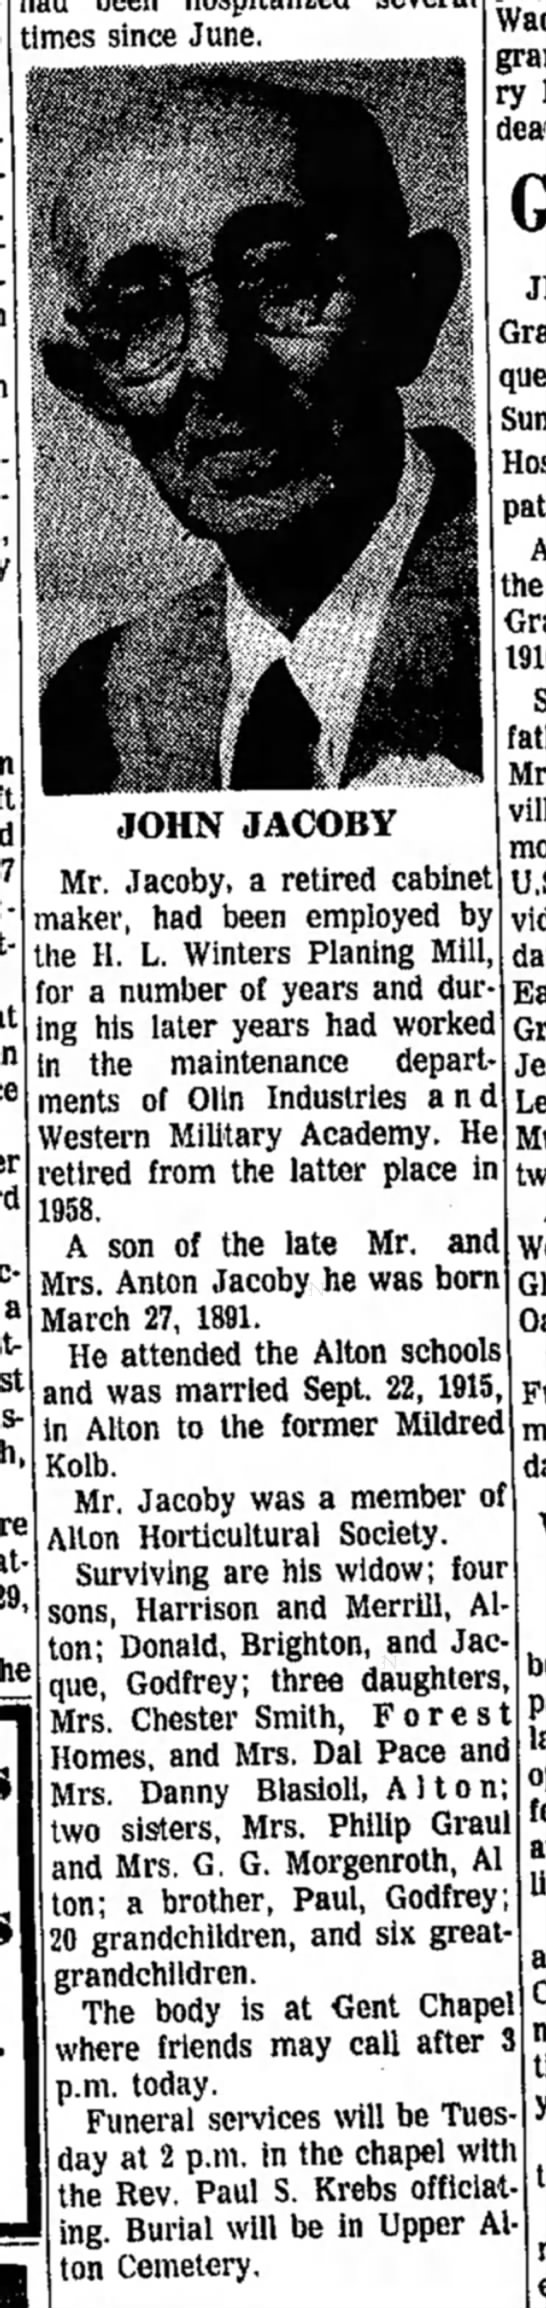 Anton Jacoby's son August 30, 1965